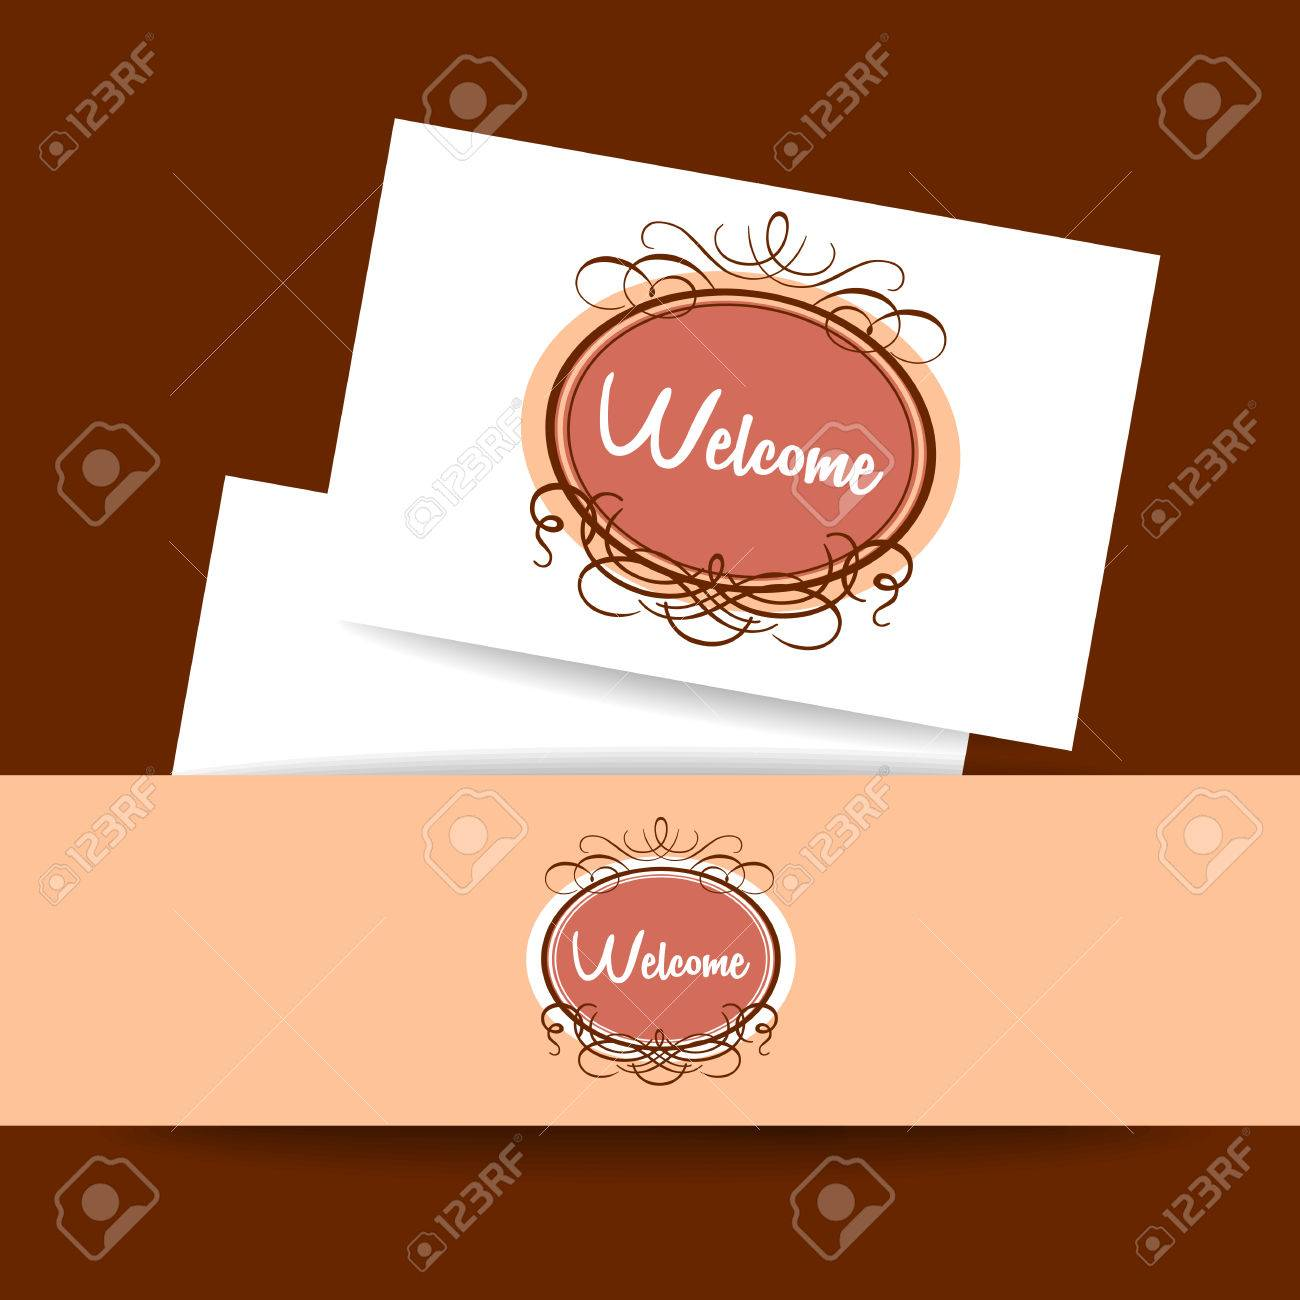 Welcome design template invitation gala decorations royalty free welcome design template invitation gala decorations stock vector 50093312 stopboris Gallery